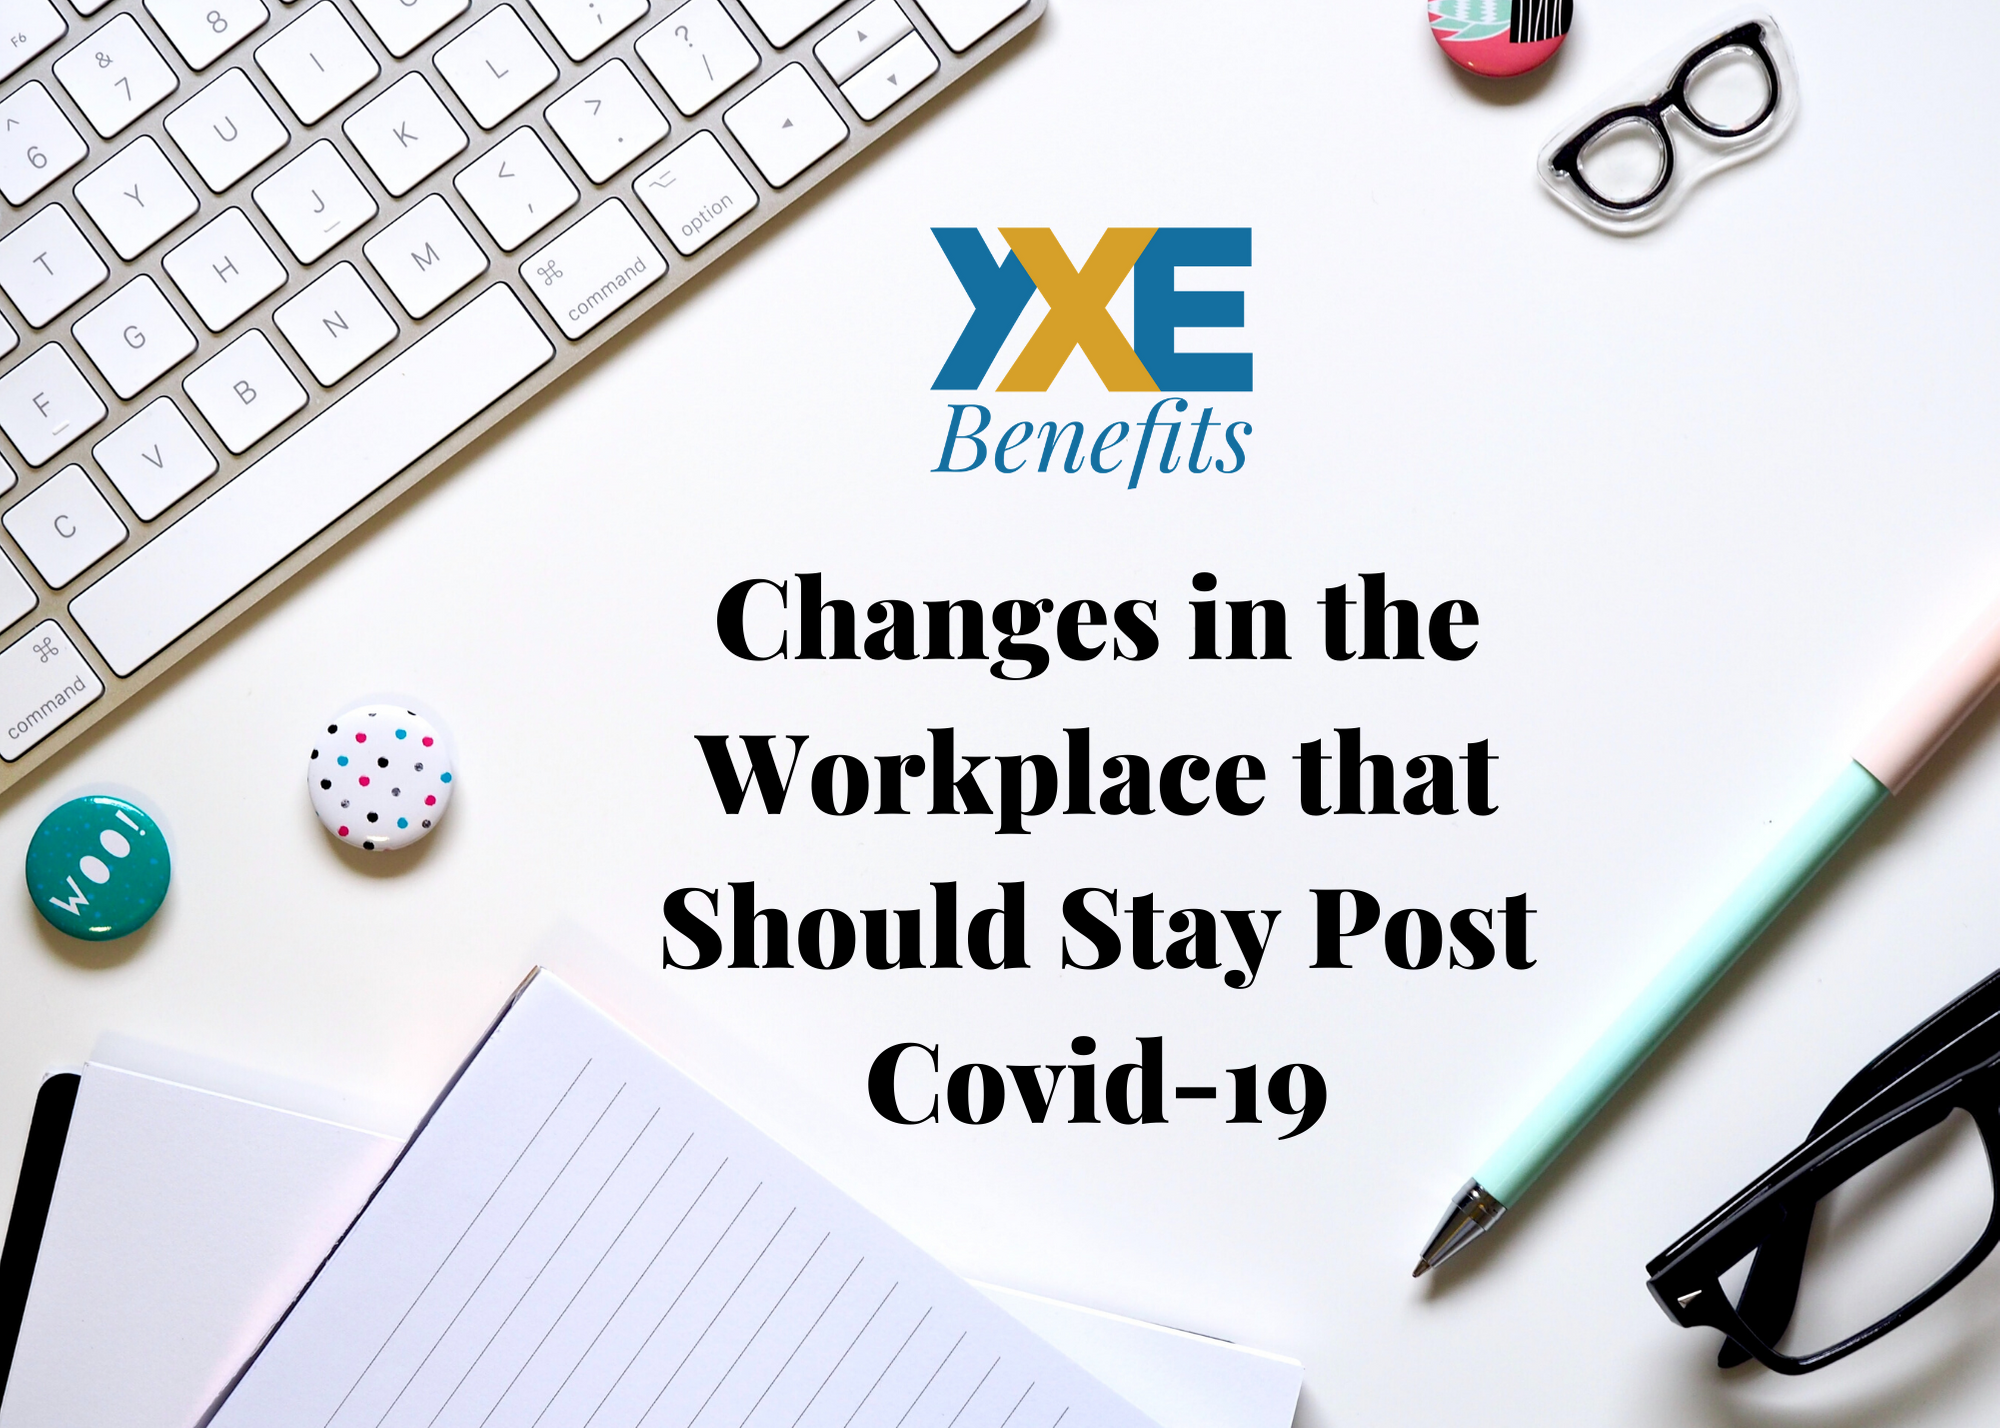 Changes in the Workplace That Should Stay Post Covid-19